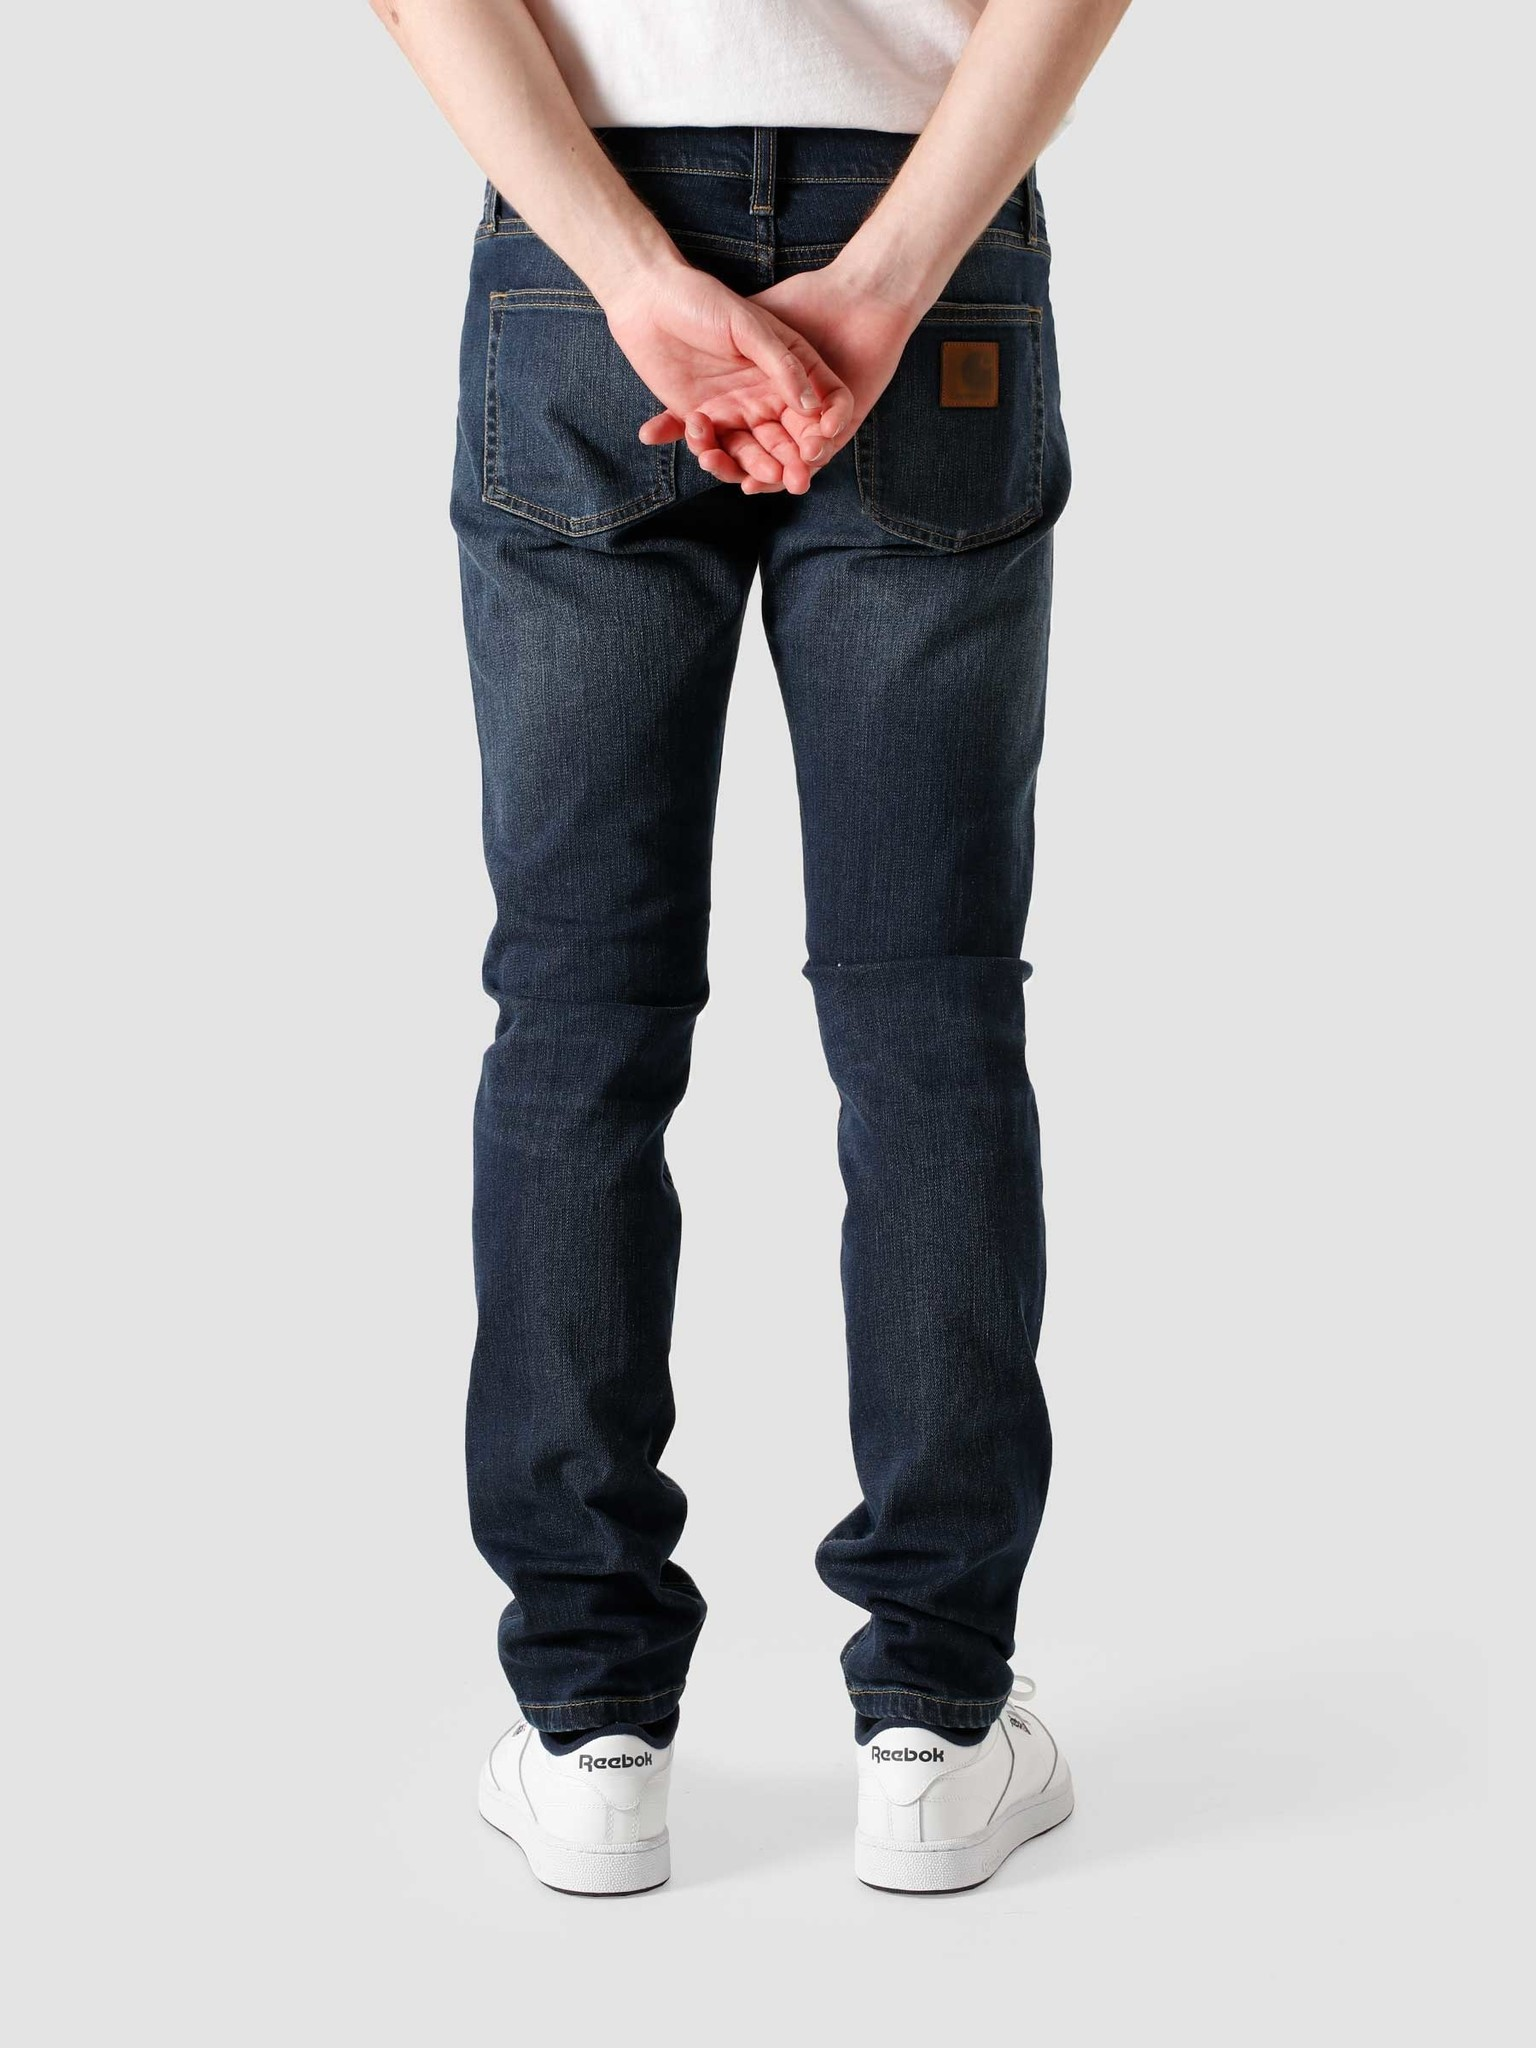 Carhartt WIP Carhartt WIP Rebel Pant Dark Worn Wash Blue I015331-01WV